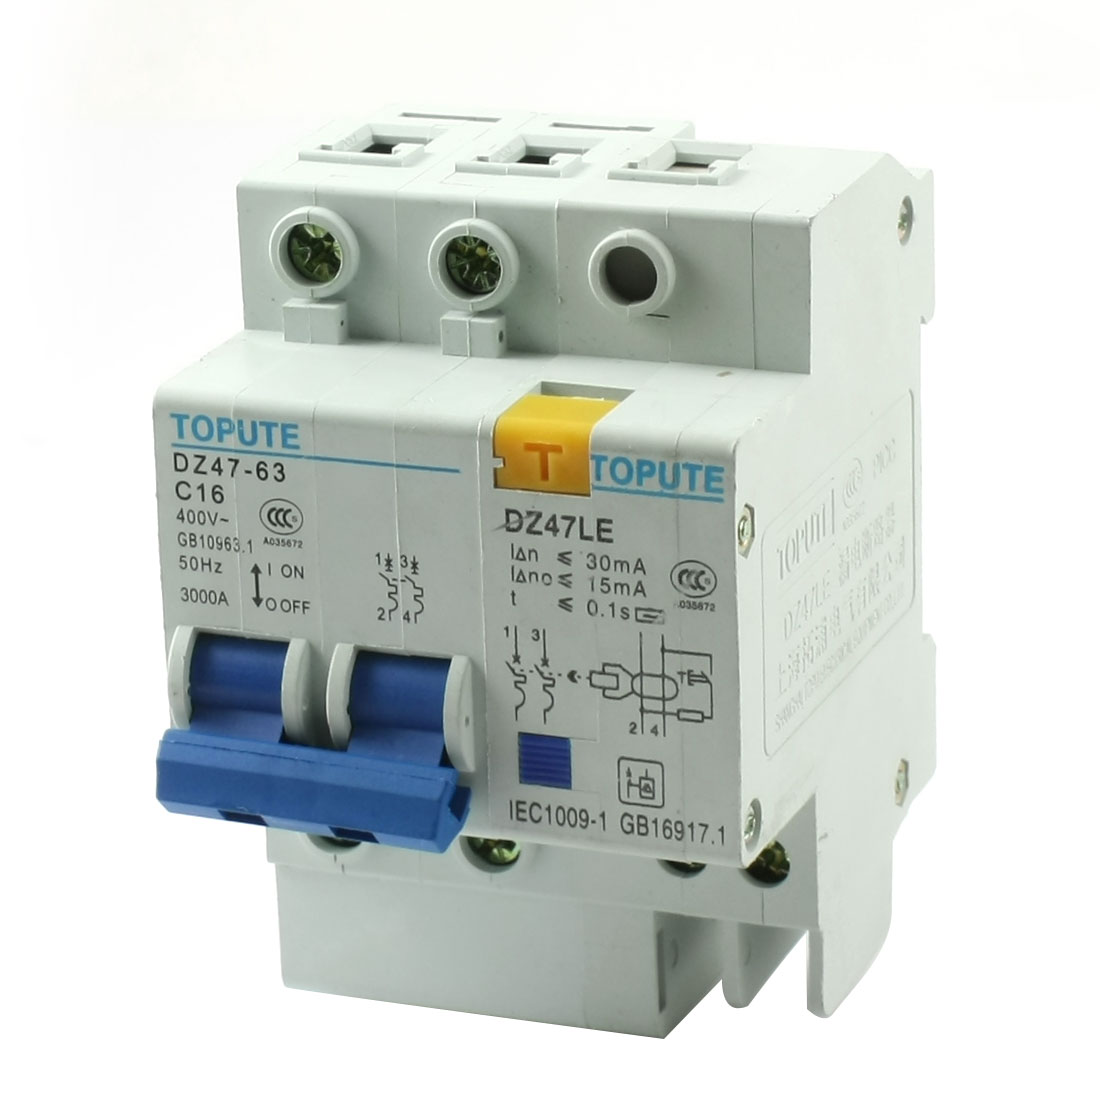 35mm DIN Rail Mounting On/Off Switch 4 Screw Teminals 2-Pole MCB Circuit Breaker Overload Protection AC400V 16A